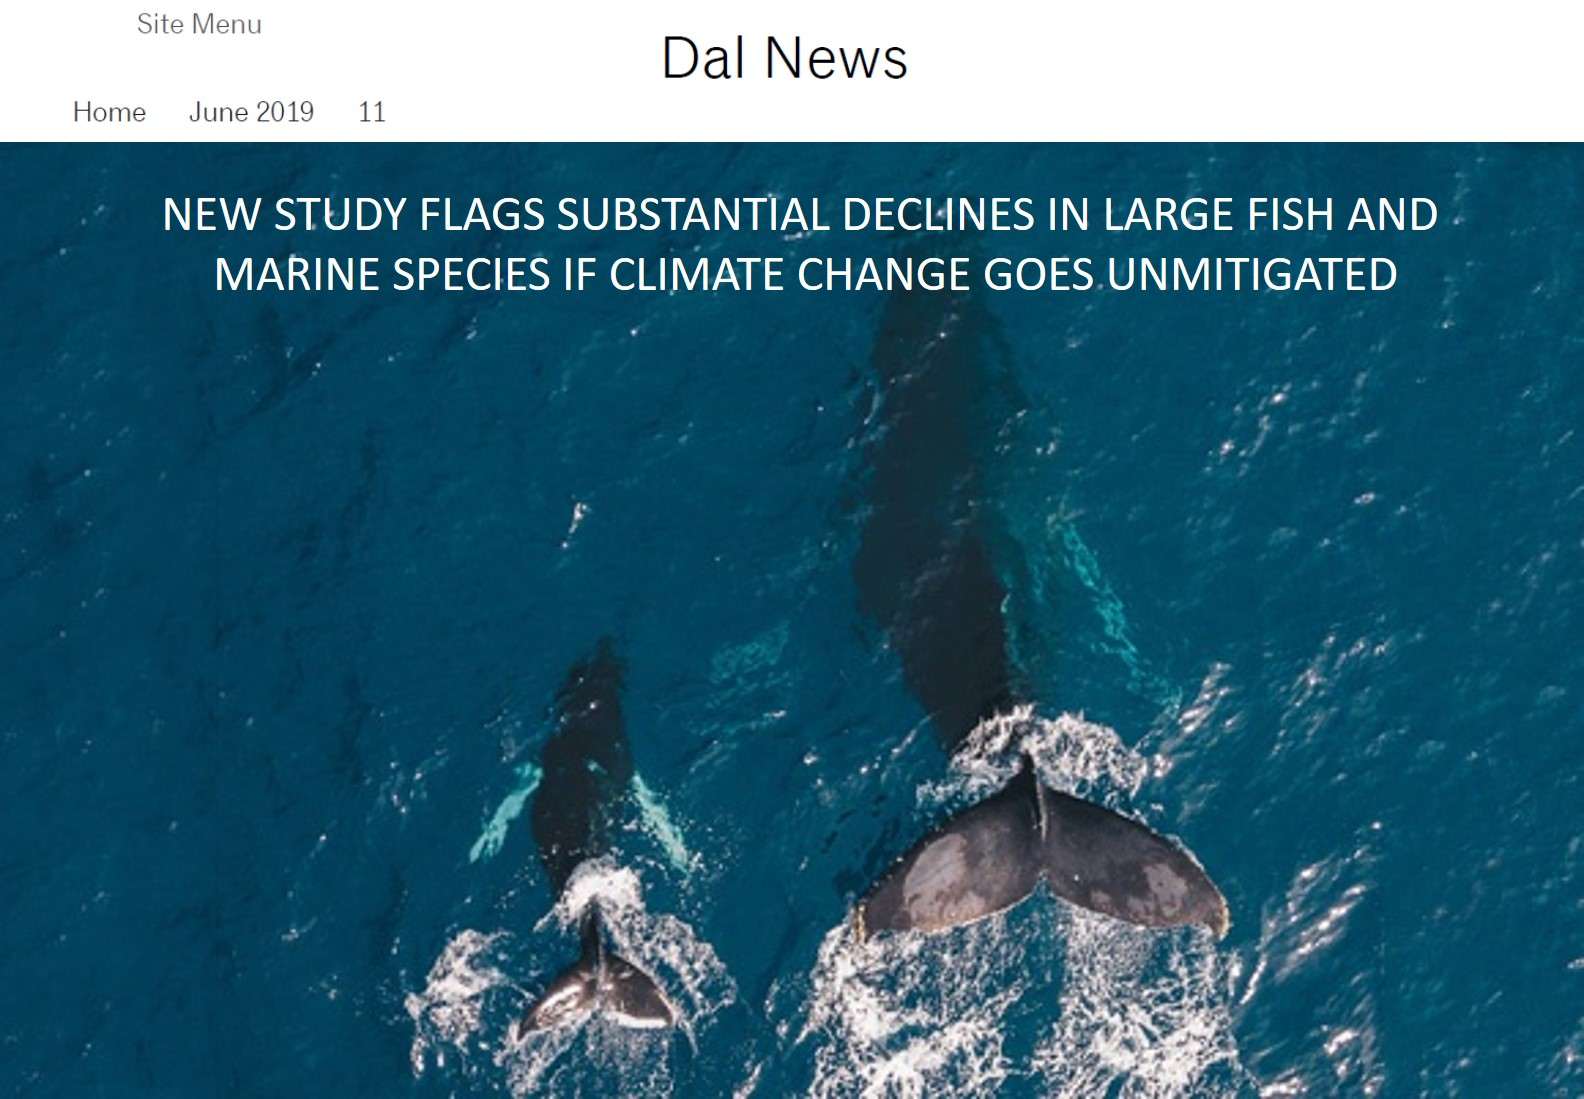 FishMIP_June 2019_Dal news